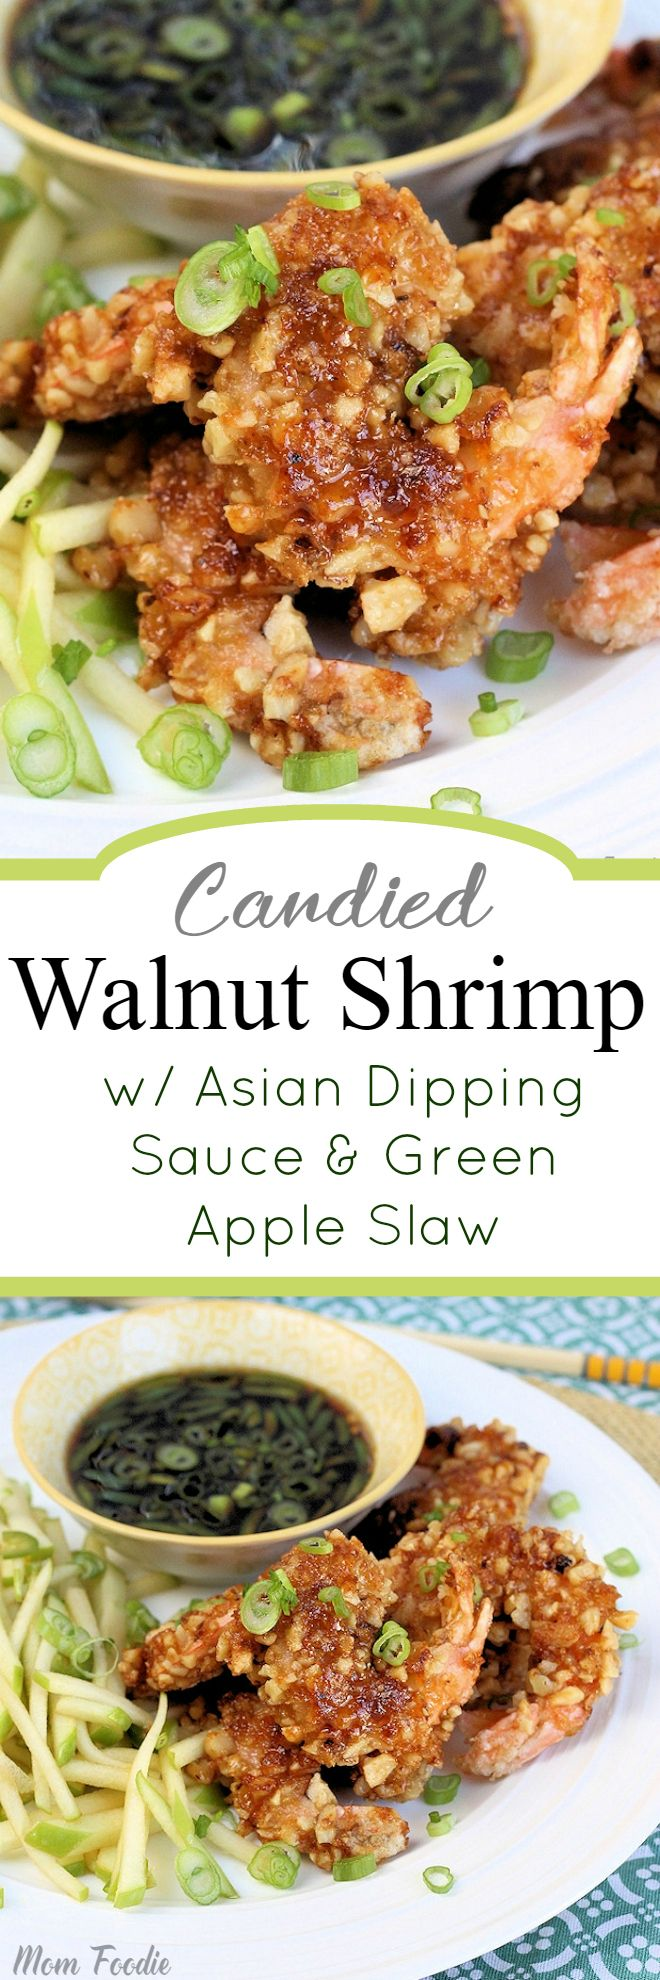 Candied Walnut Shrimp with Asian Dipping Sauce and Green Apple Slaw (gluten-free)